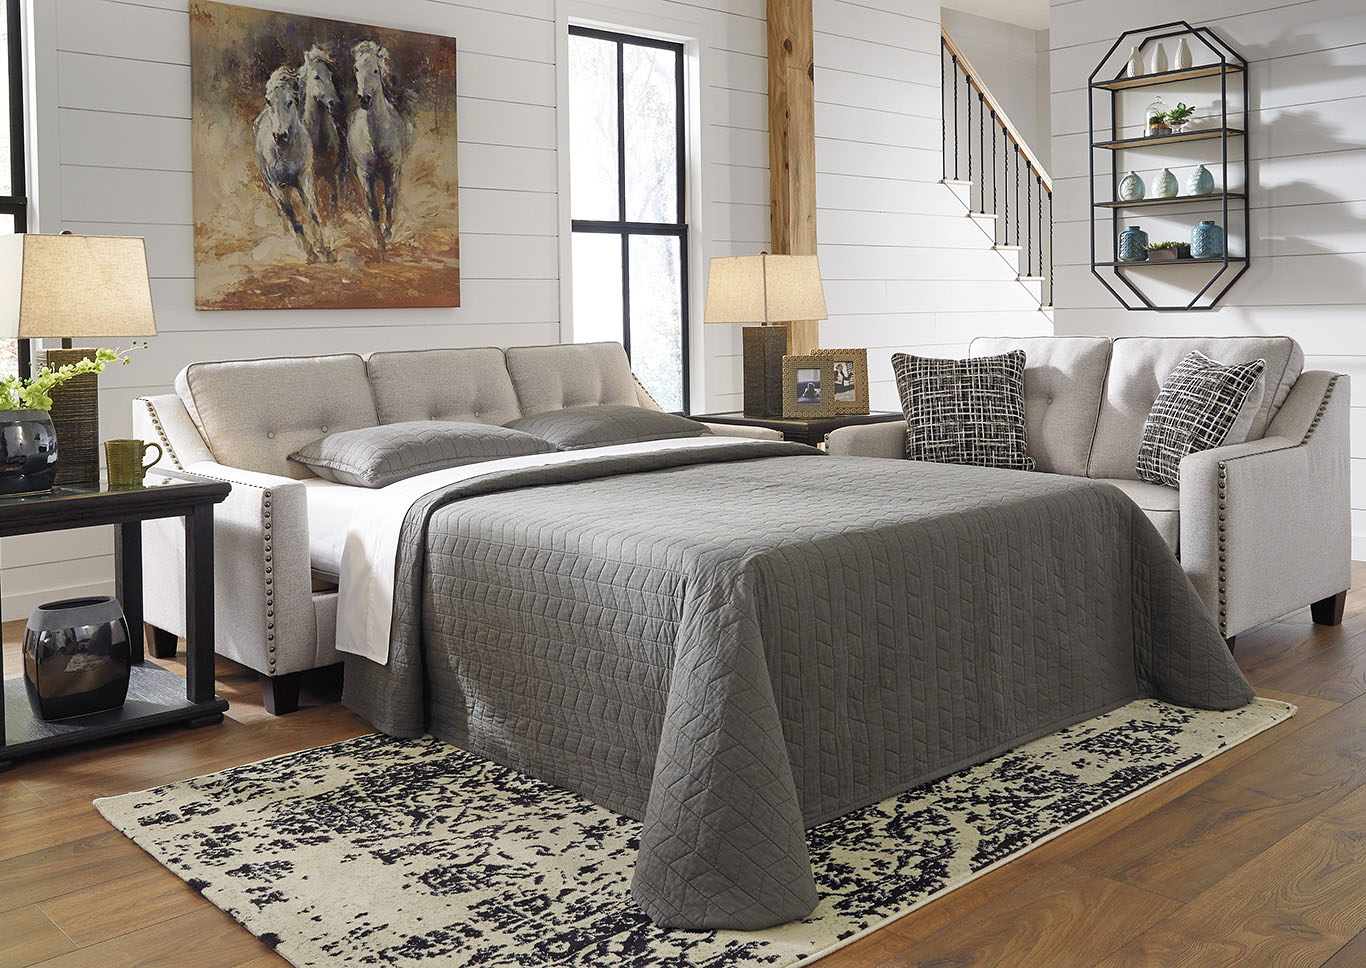 Marrero Fog Queen Sofa Sleeper,Signature Design By Ashley